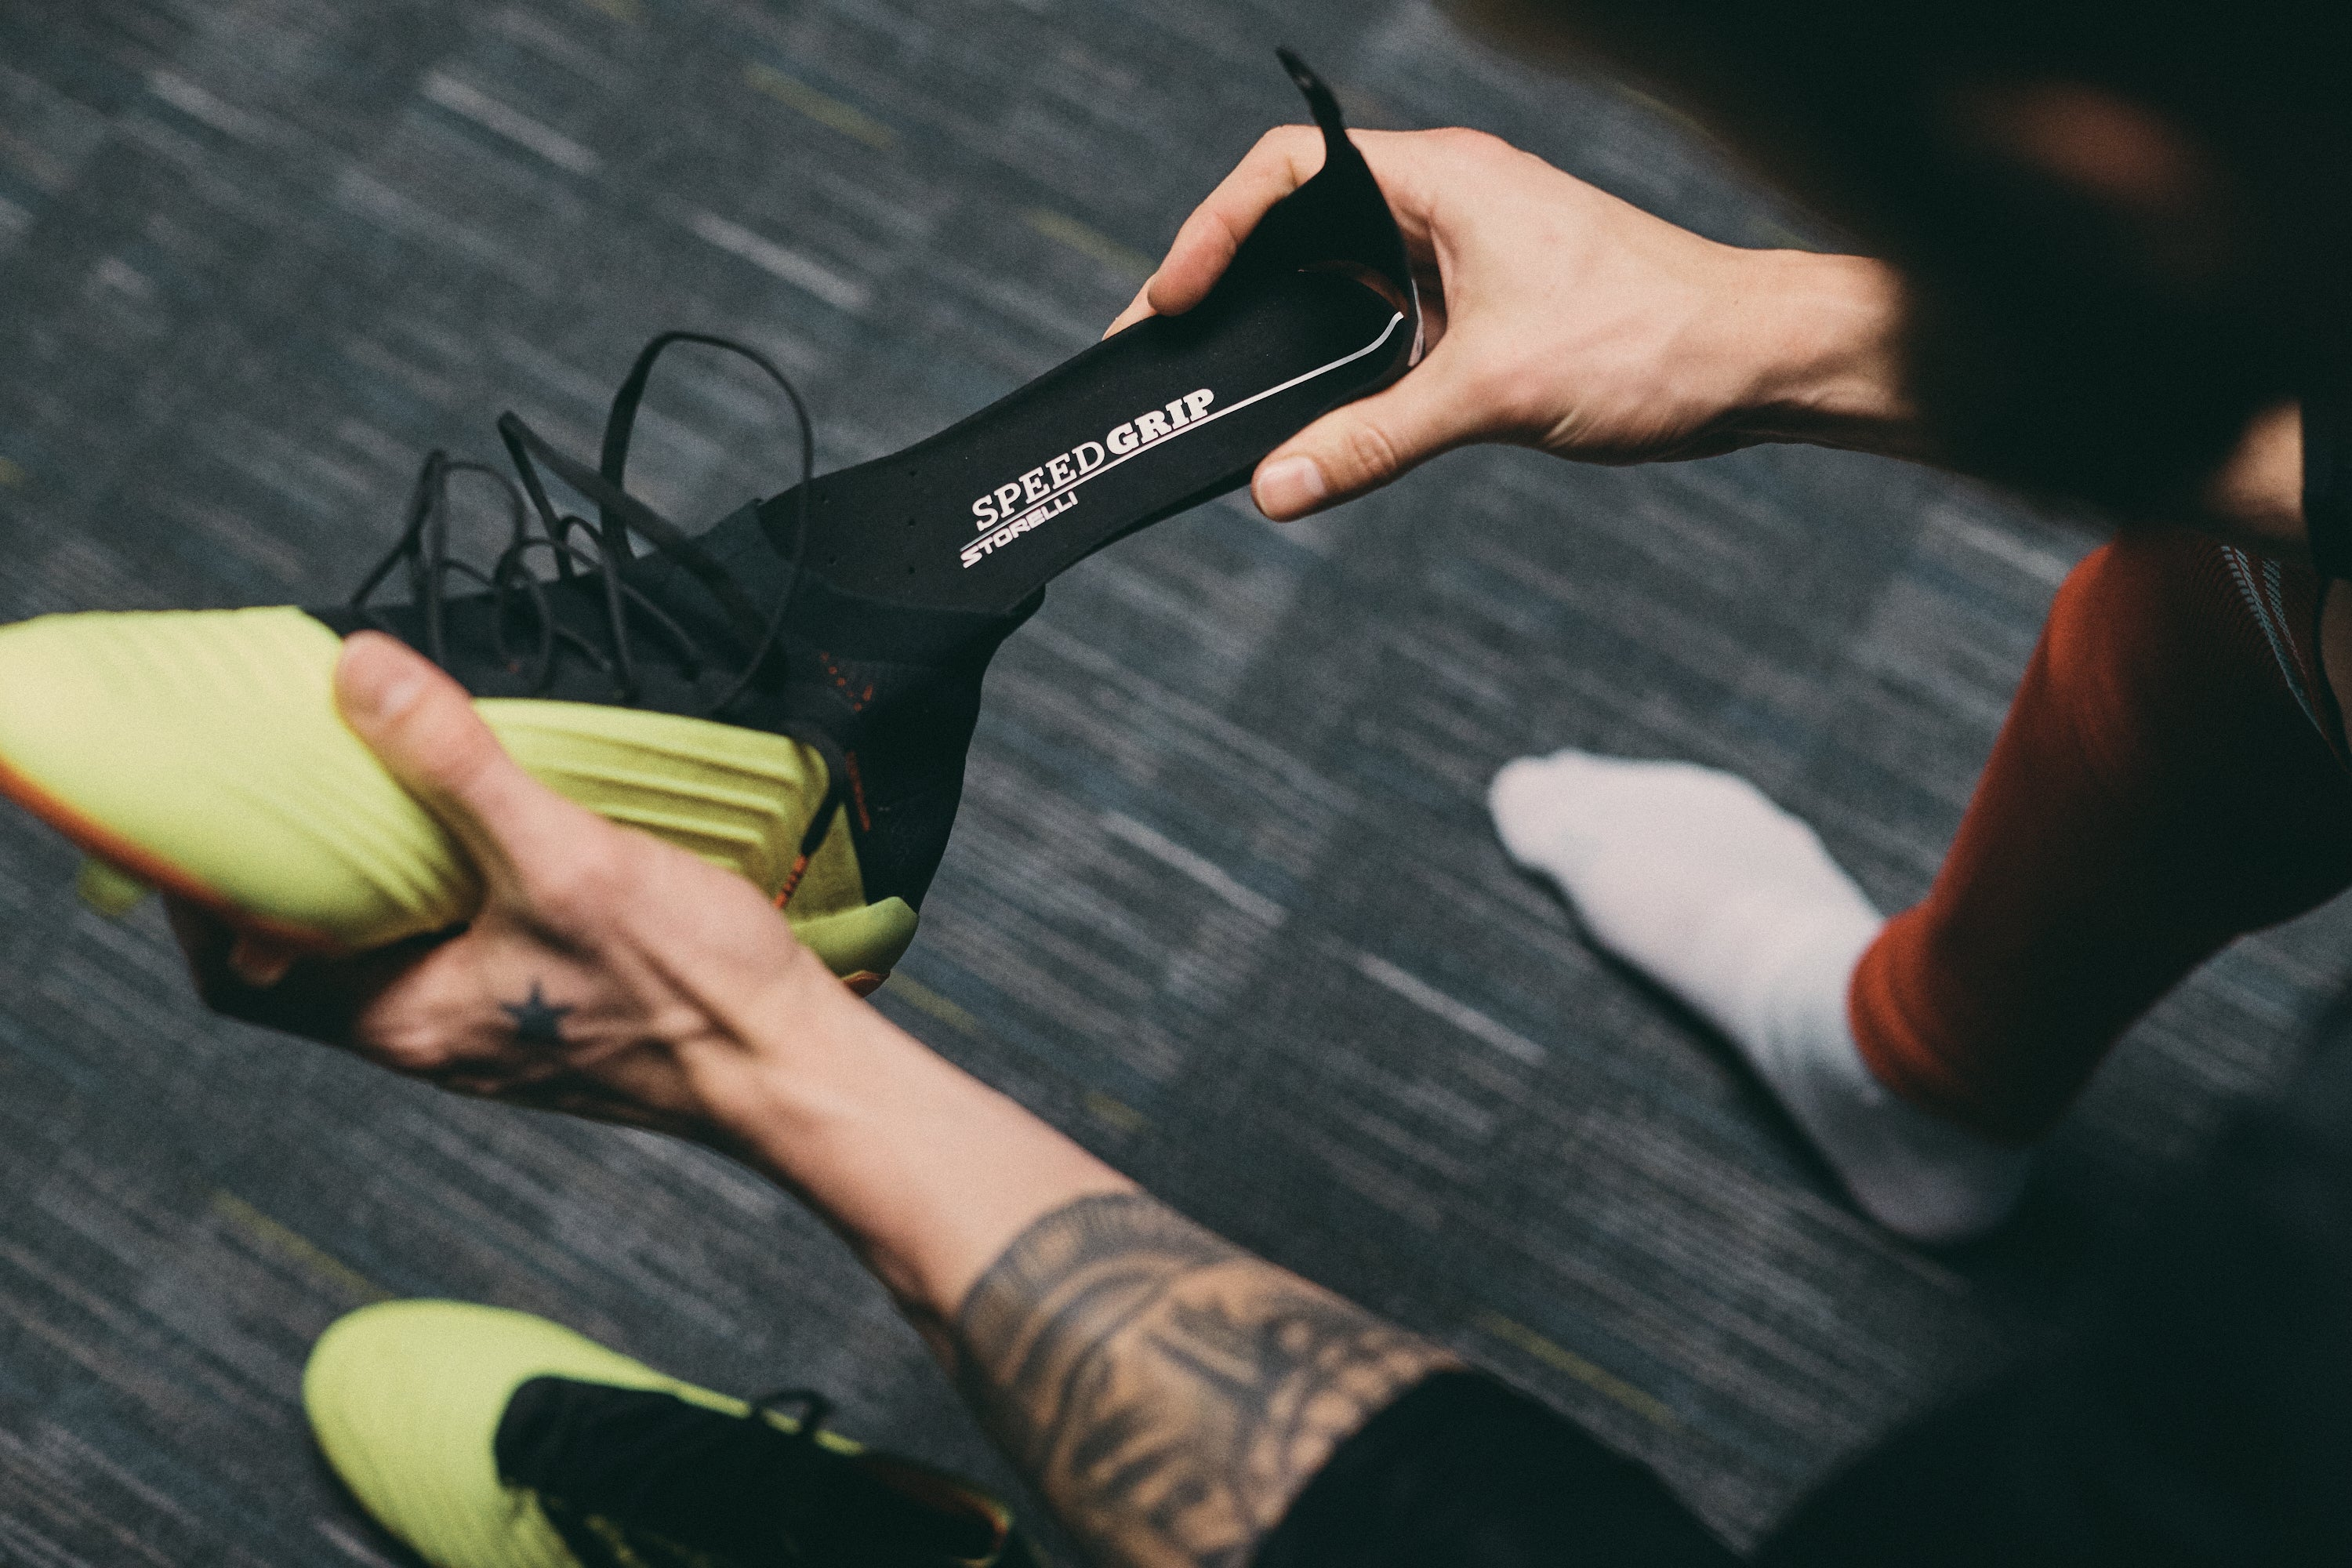 SpeedGrip® insoles combined with Adidas Predators is a winning combination.